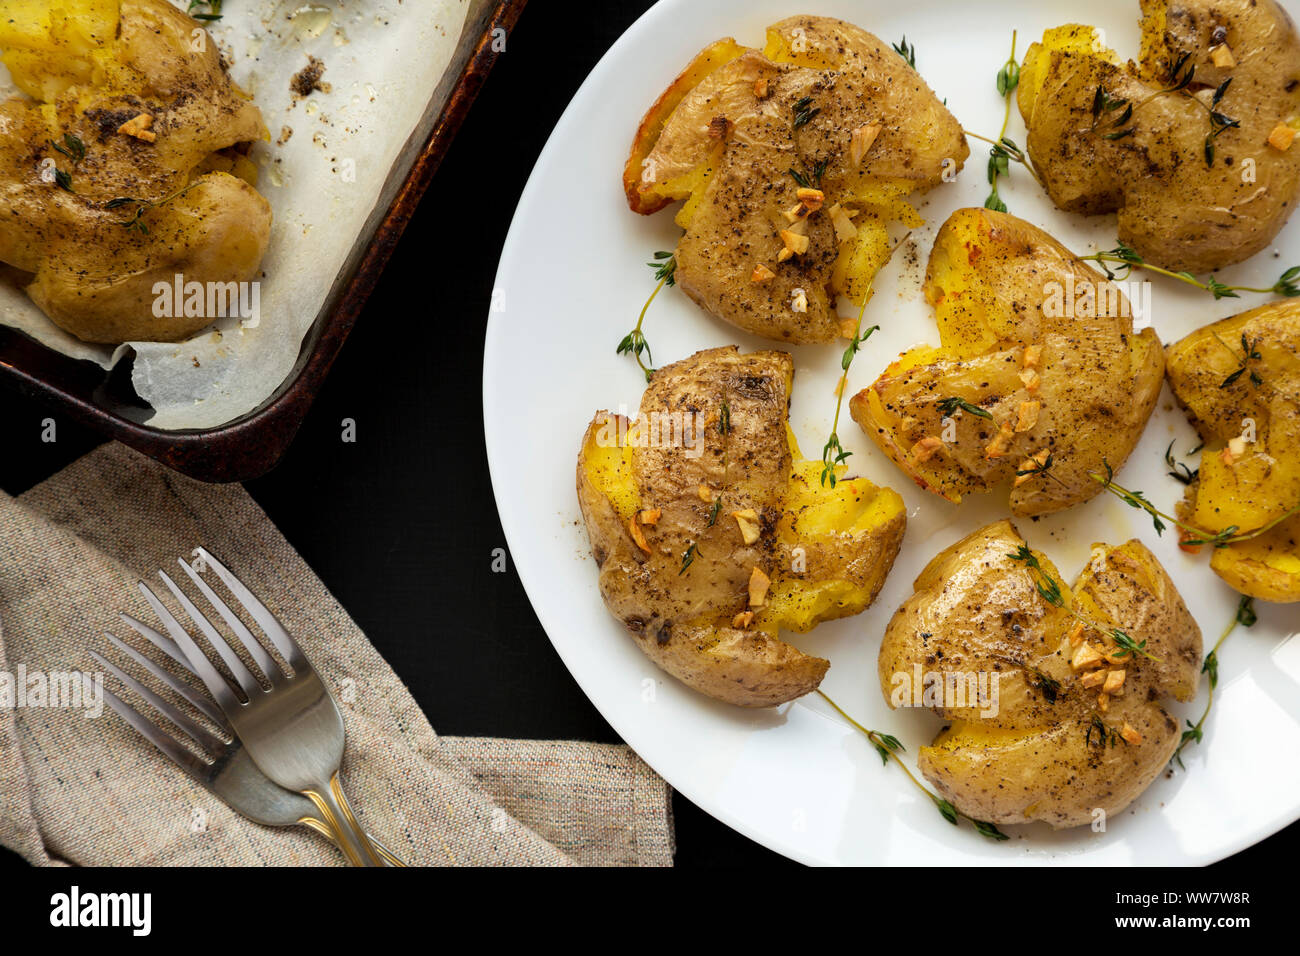 Homemade garlic thyme smashed potatoes on a white plate on a black background, top view. Flat lay, overhead, from above. Close-up. Stock Photo